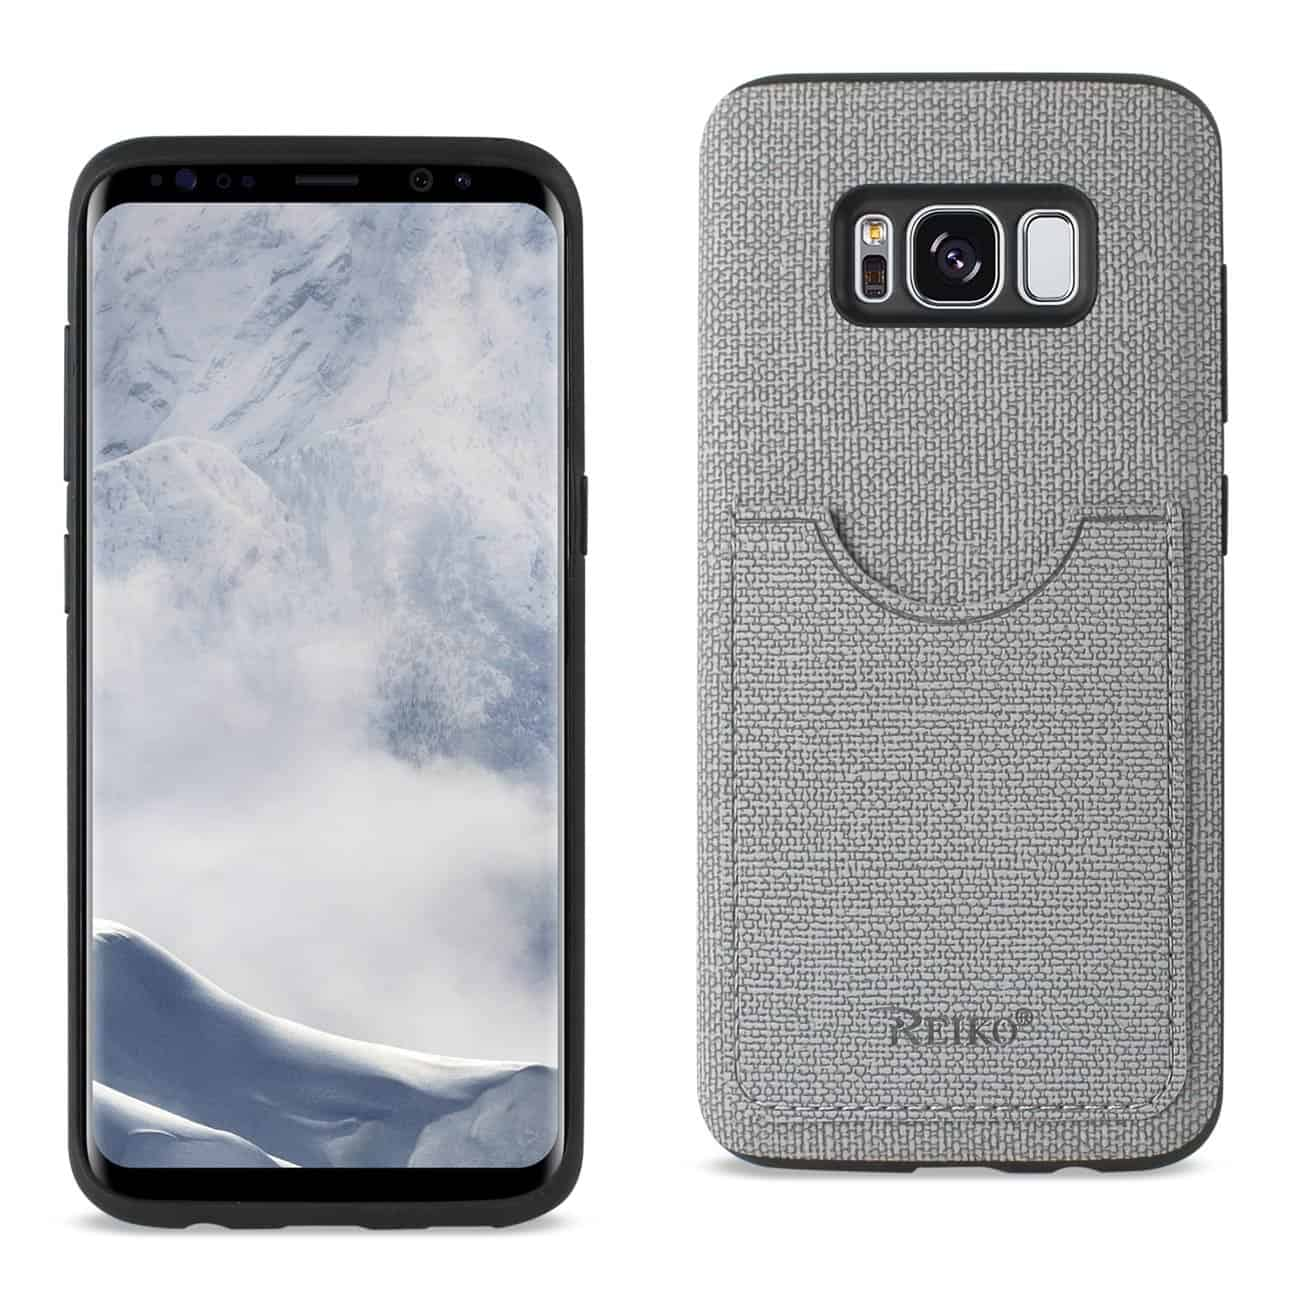 SAMSUNG GALAXY S8/ SM ANTI-SLIP TEXTURE PROTECTIVE COVER WITH CARD SLOT IN GRAY